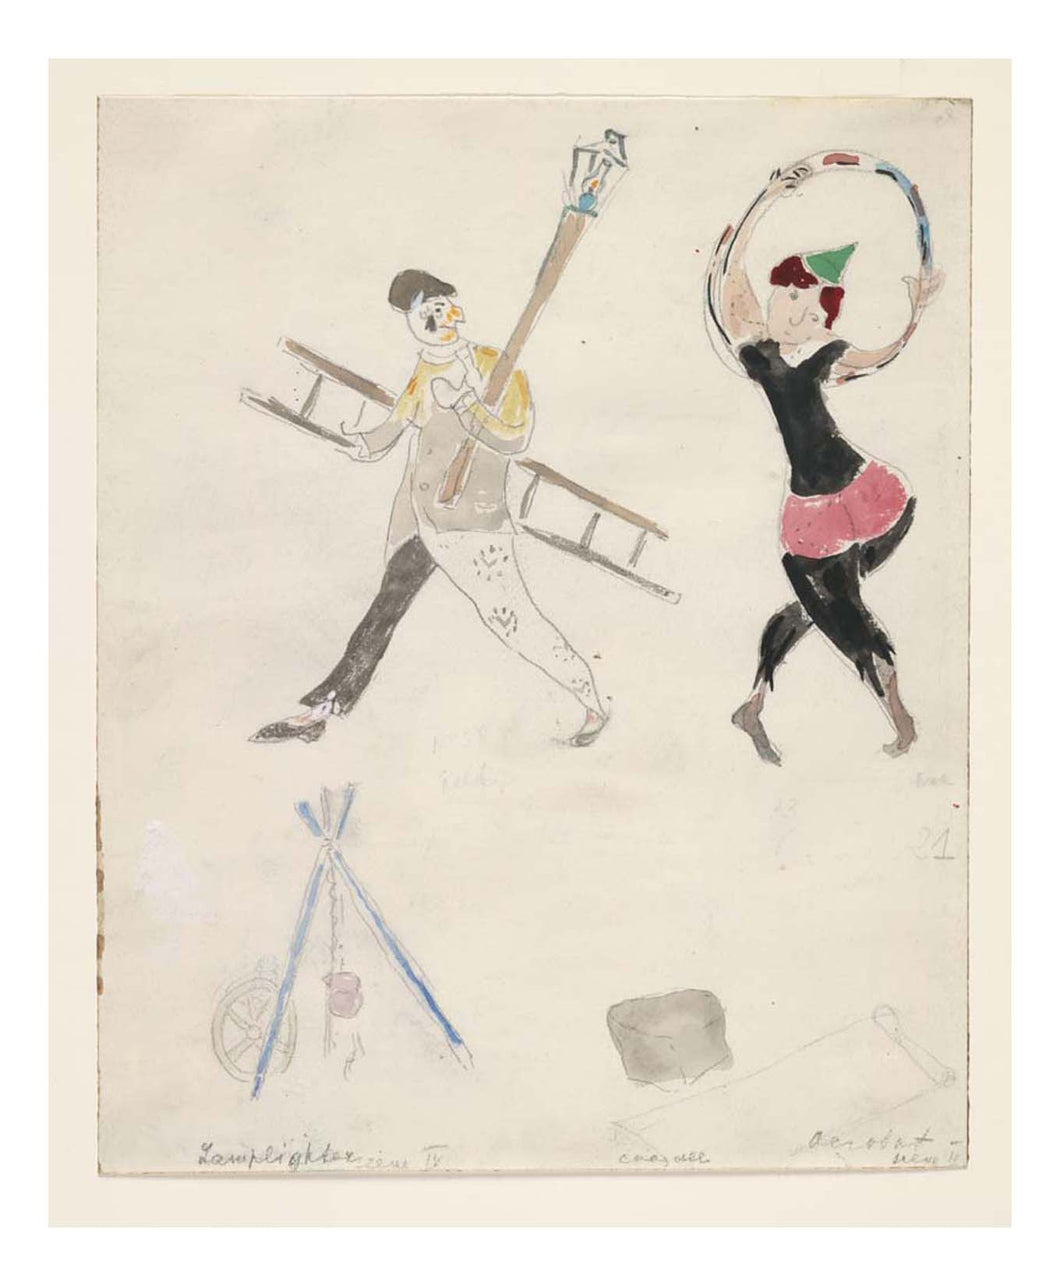 Marc Chagall - A Lamplighter and an Acrobat, costume design for Aleko, 16x12